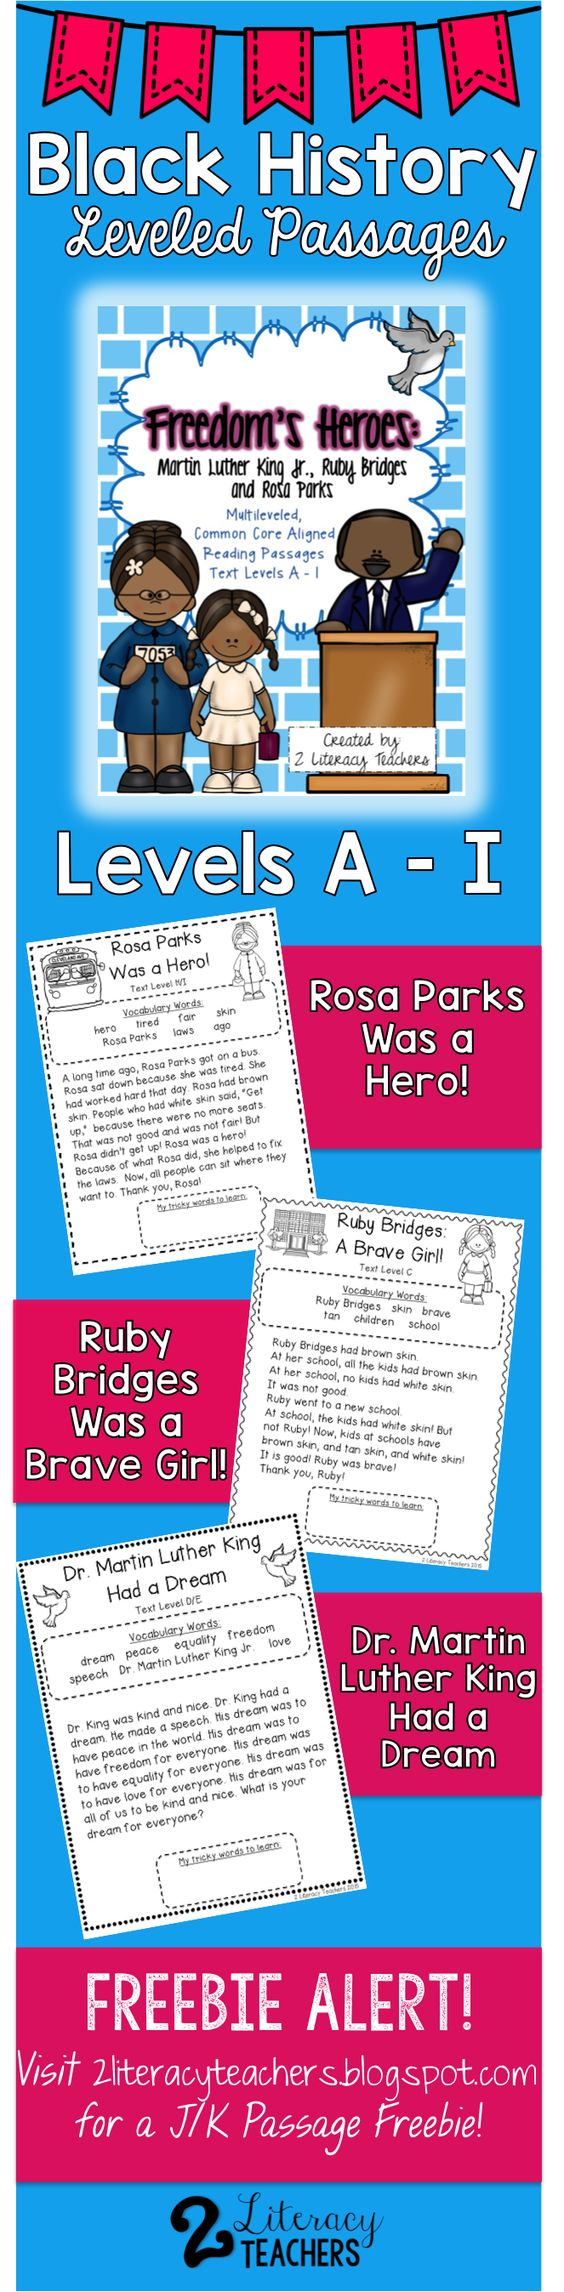 Worksheet Levelled Reading Passages martin luther king jr ruby bridges rosa parks leveled reading black history month and mlk passages each passage has levels a i perfect for guided independent practice